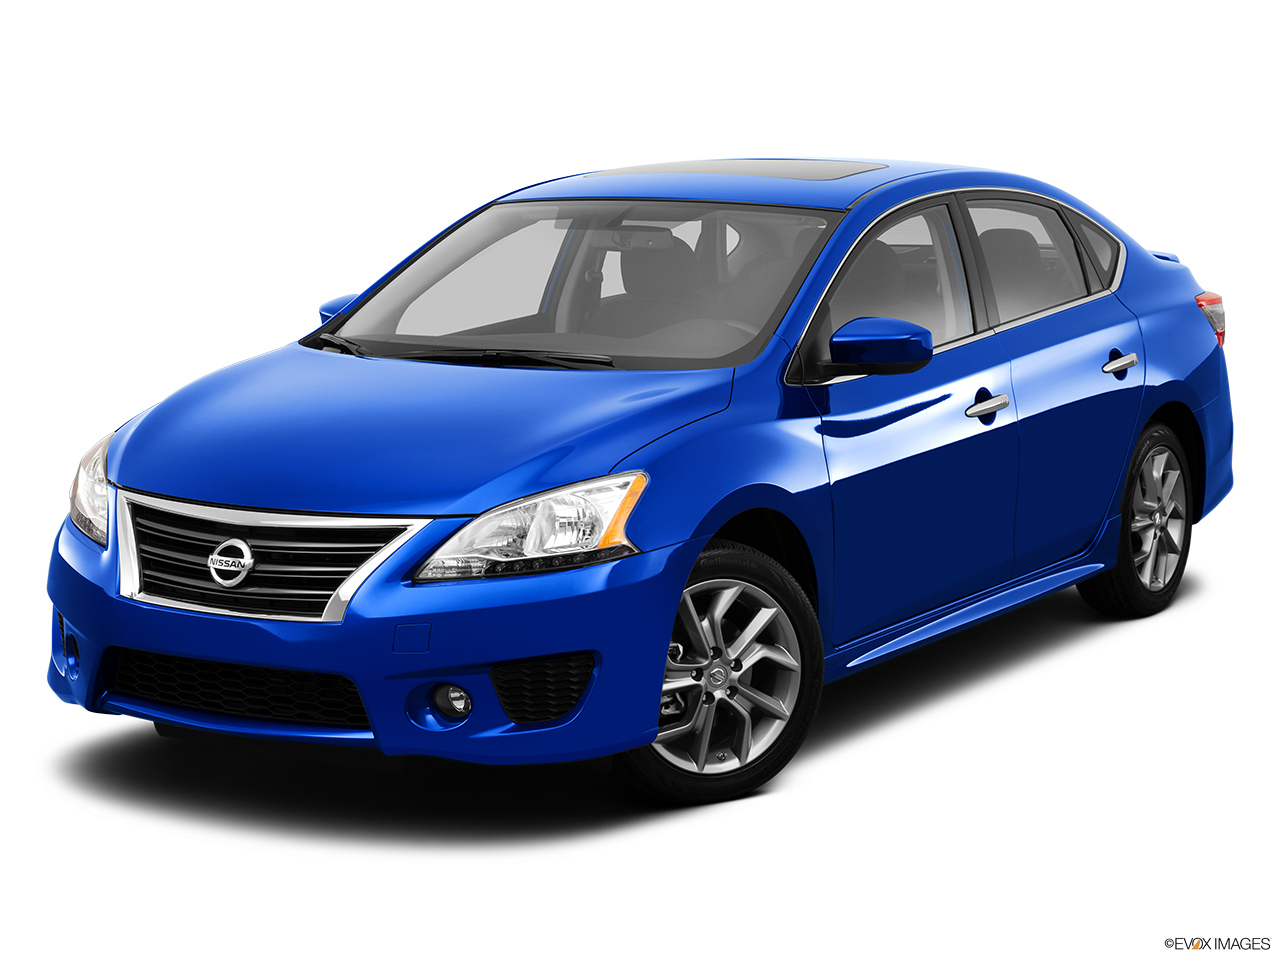 2014 nissan sentra sedan i4 manual s. Black Bedroom Furniture Sets. Home Design Ideas